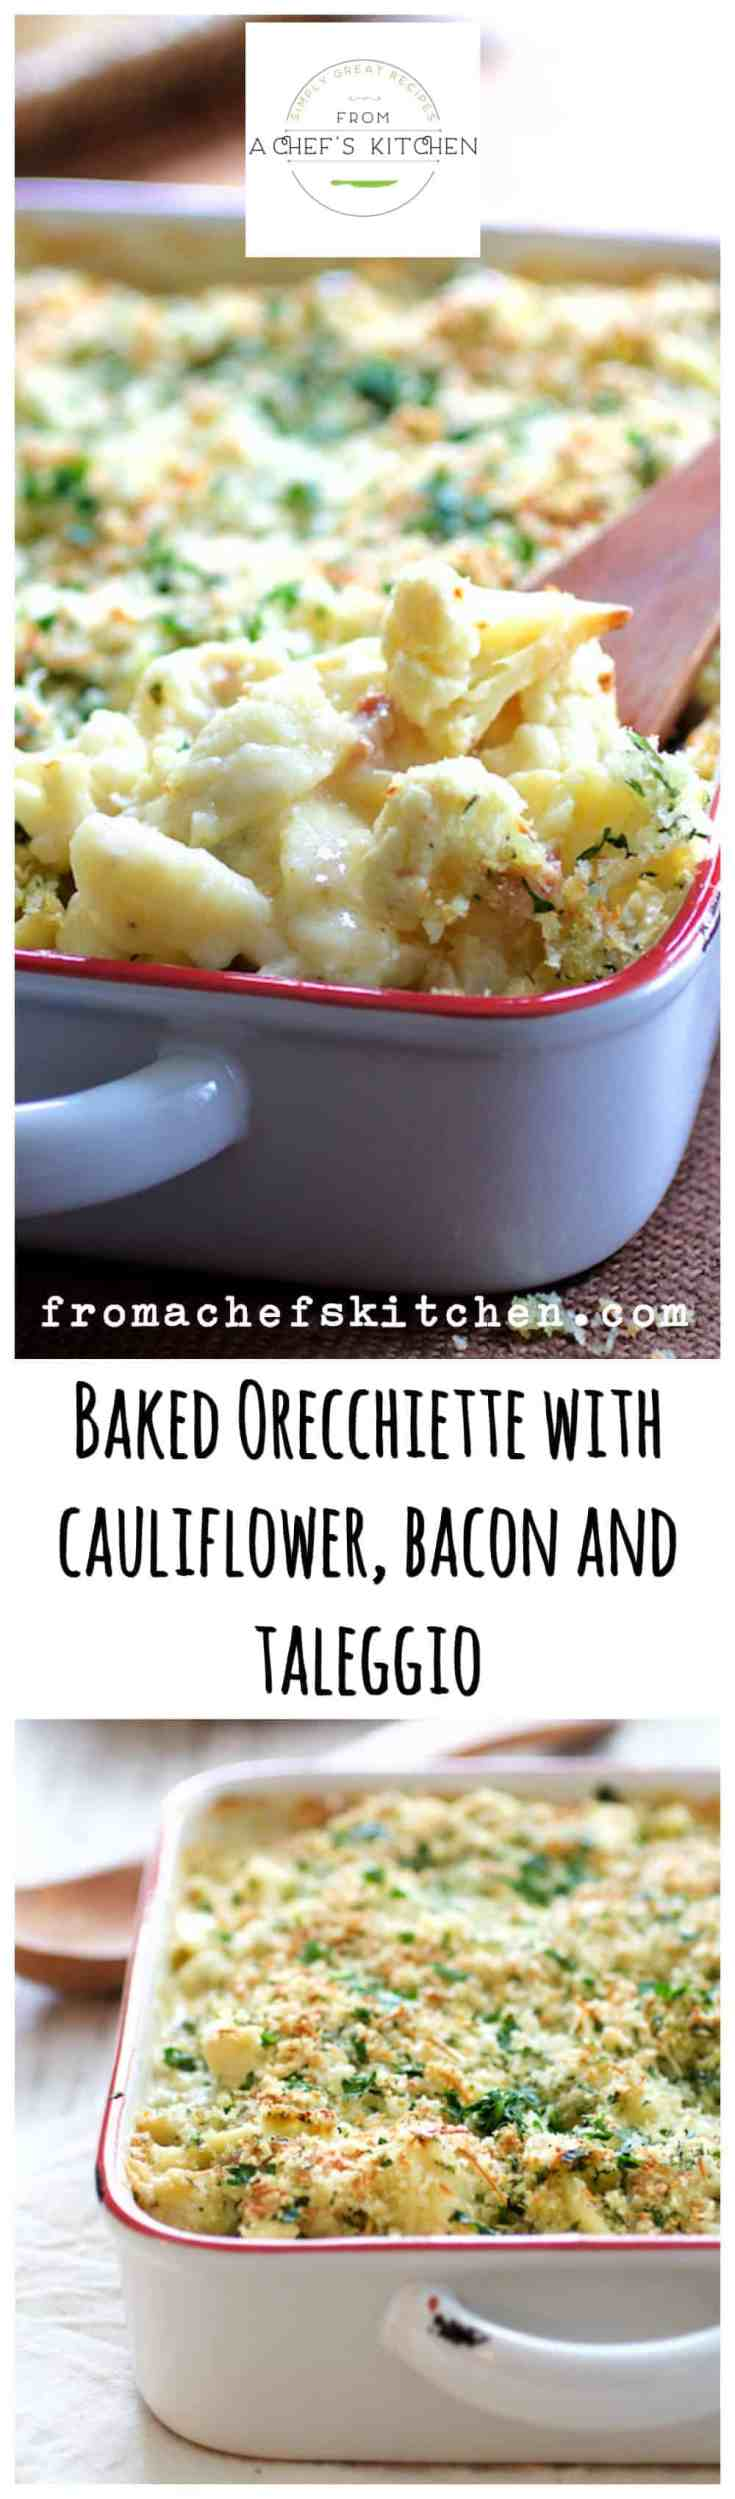 Baked Orecchiette with Cauliflower, Bacon and Taleggio is comfort food with an elegant side! It's like an adult mac and cheese! #pasta #bakedpasta #cauliflower #bacon